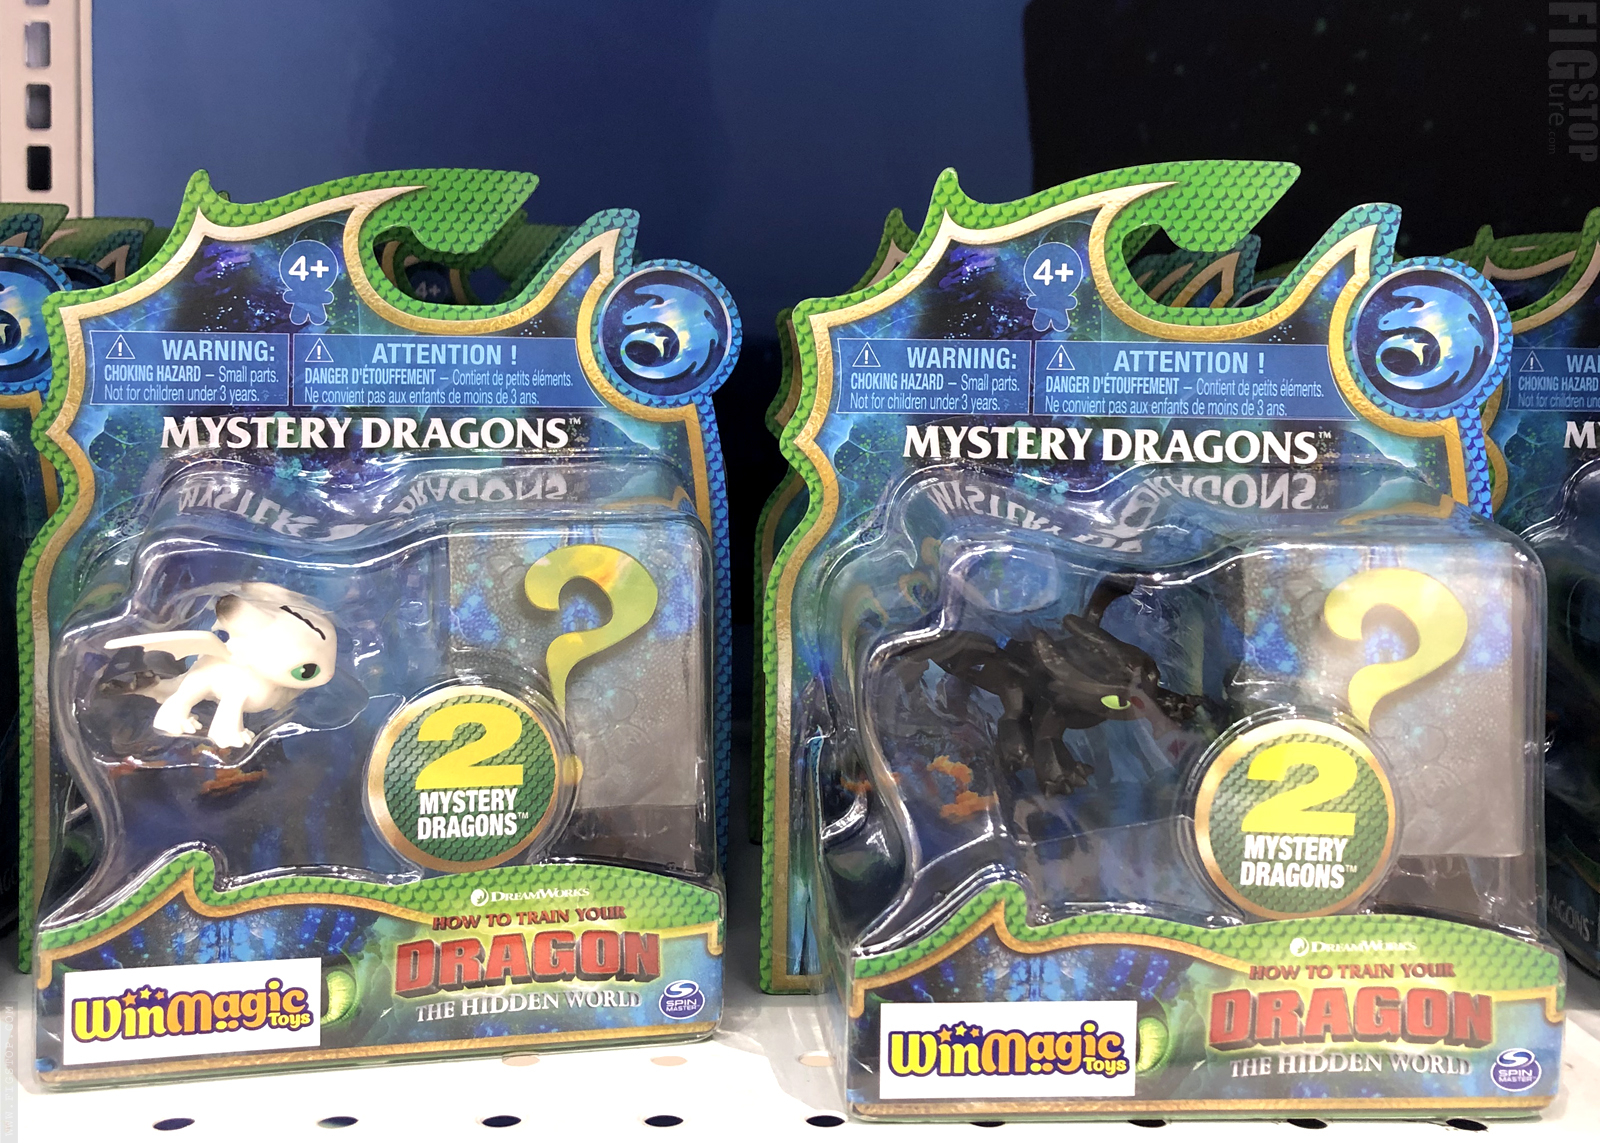 Toys R Us Is Fully Loaded With How To Train Your Dragon The Hidden World